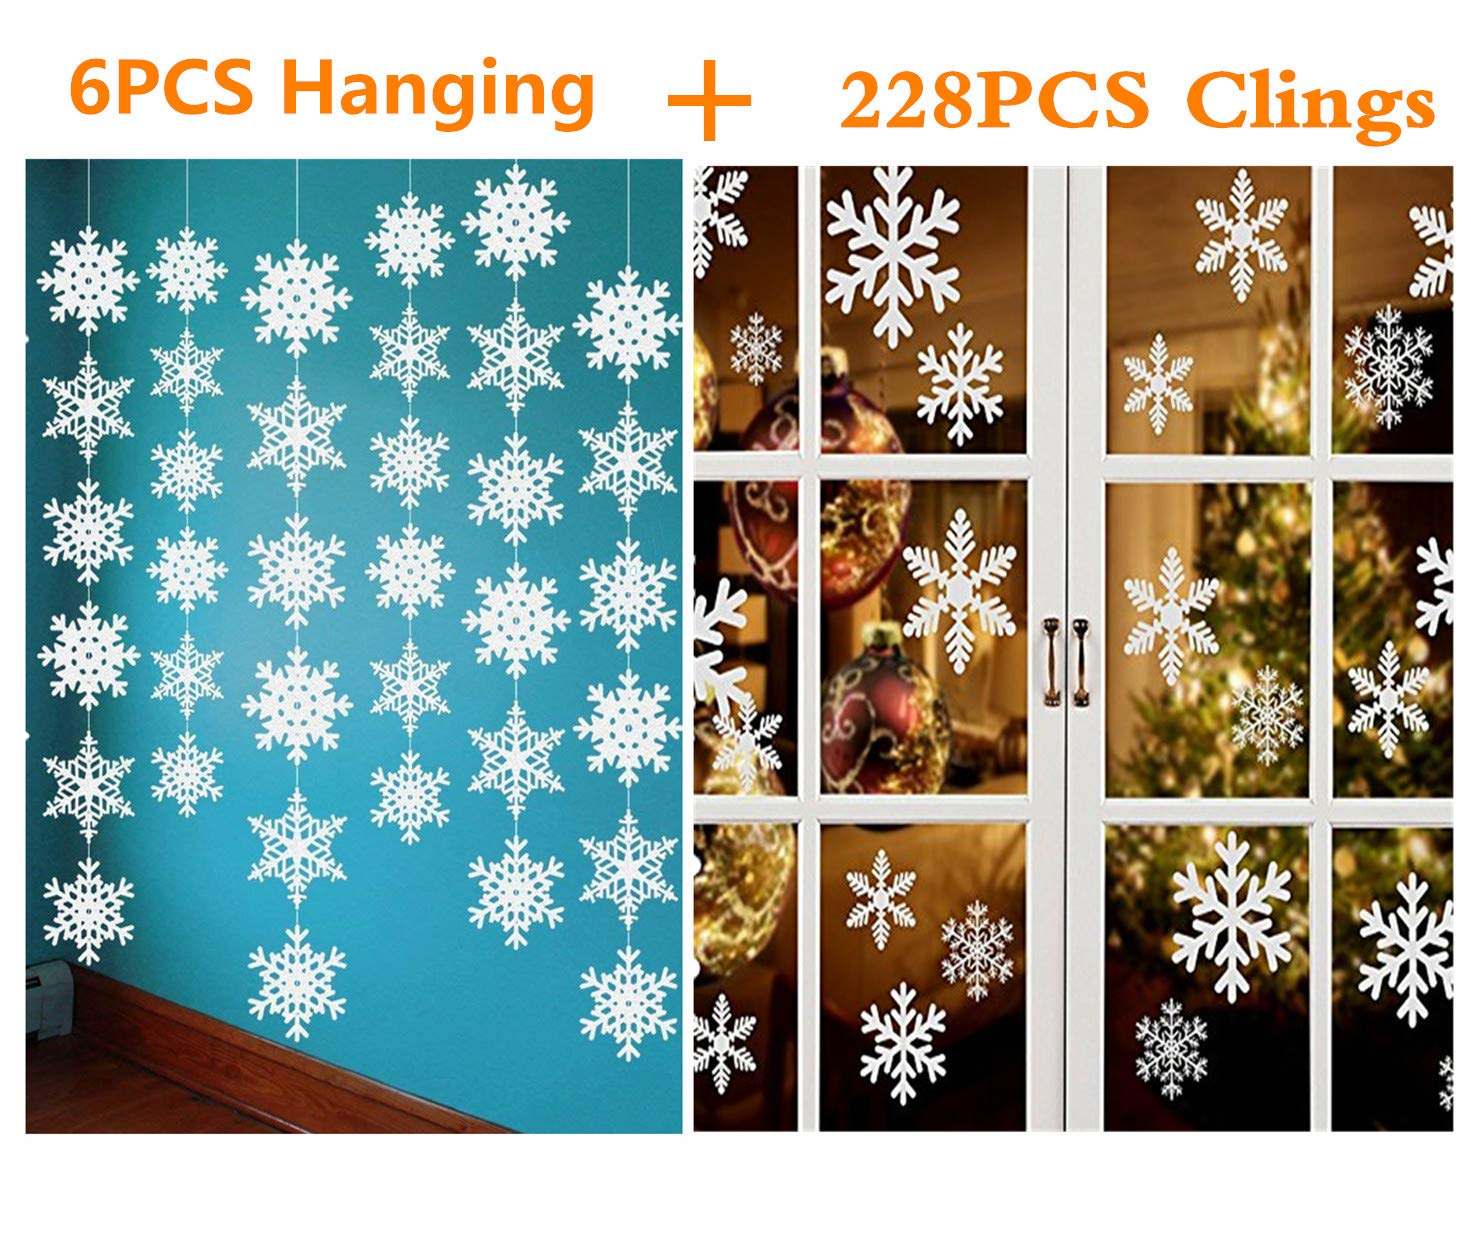 Beschoice 228 Christmas Snowflake Window Clings, with 6PCS Christmas Hanging Party Decorations Supplies